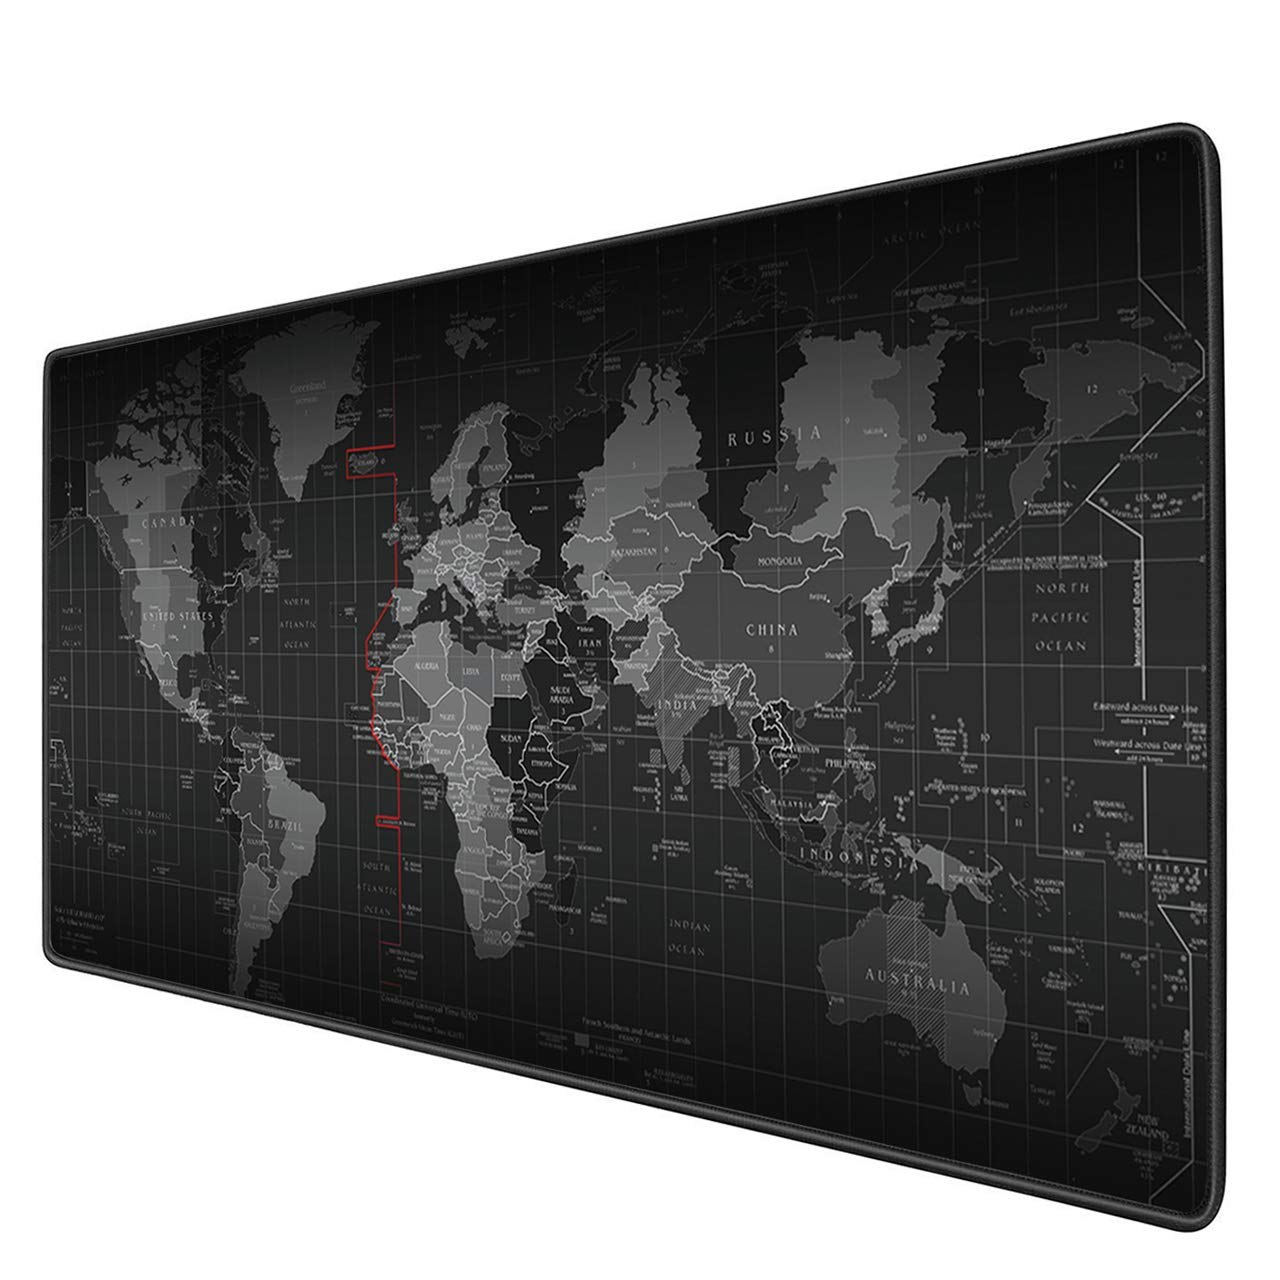 Benvo Extended Mouse Pad XXL Gaming Mouse Mat- 35.4''x15.7''x0.12'' Large Desk Pad Non-Slip Rubber Base for Any Surface, World Map Pattern